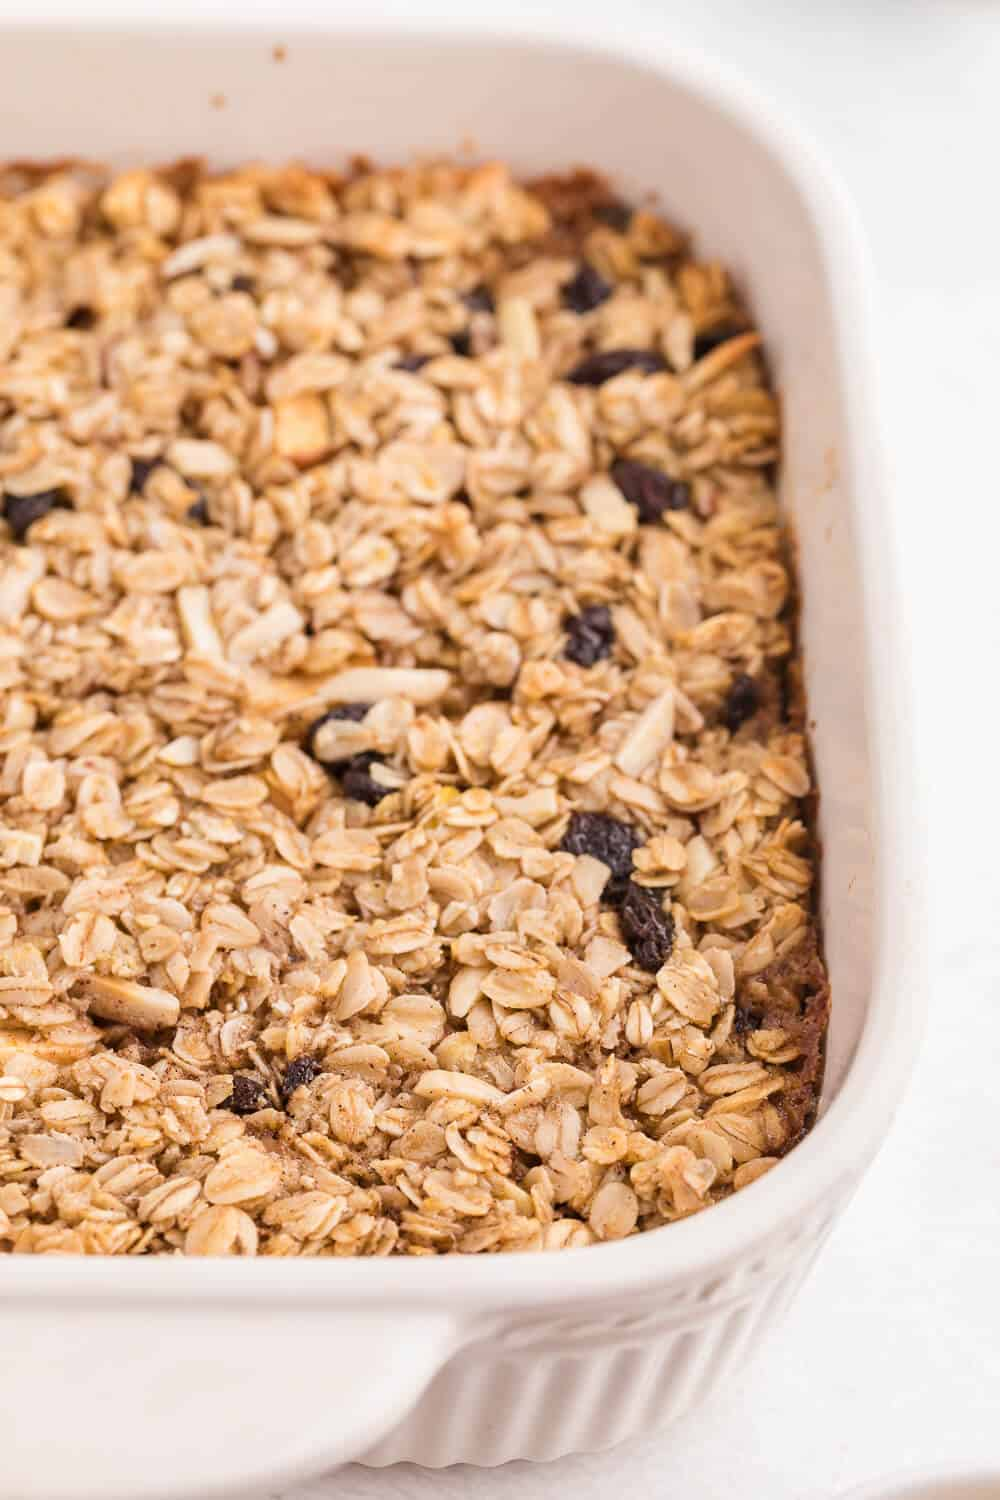 Oatmeal Casserole - This baked oatmeal is hearty, warm and filling. Loaded with apples, raisins and almonds, or whatever your favourite additions are, the whole family is sure to enjoy it!